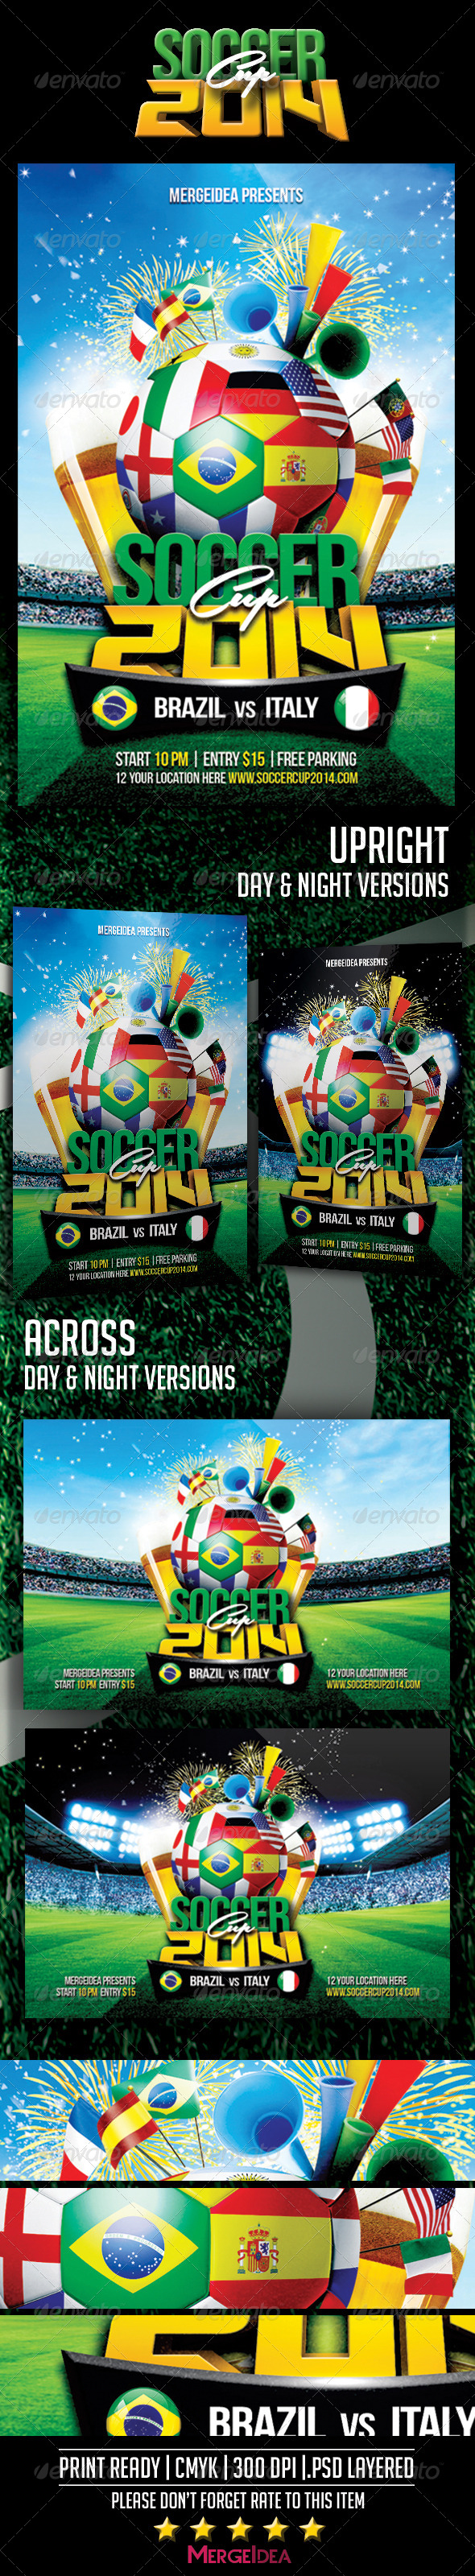 GraphicRiver Soccer Cup 2014 Flyer 7779443